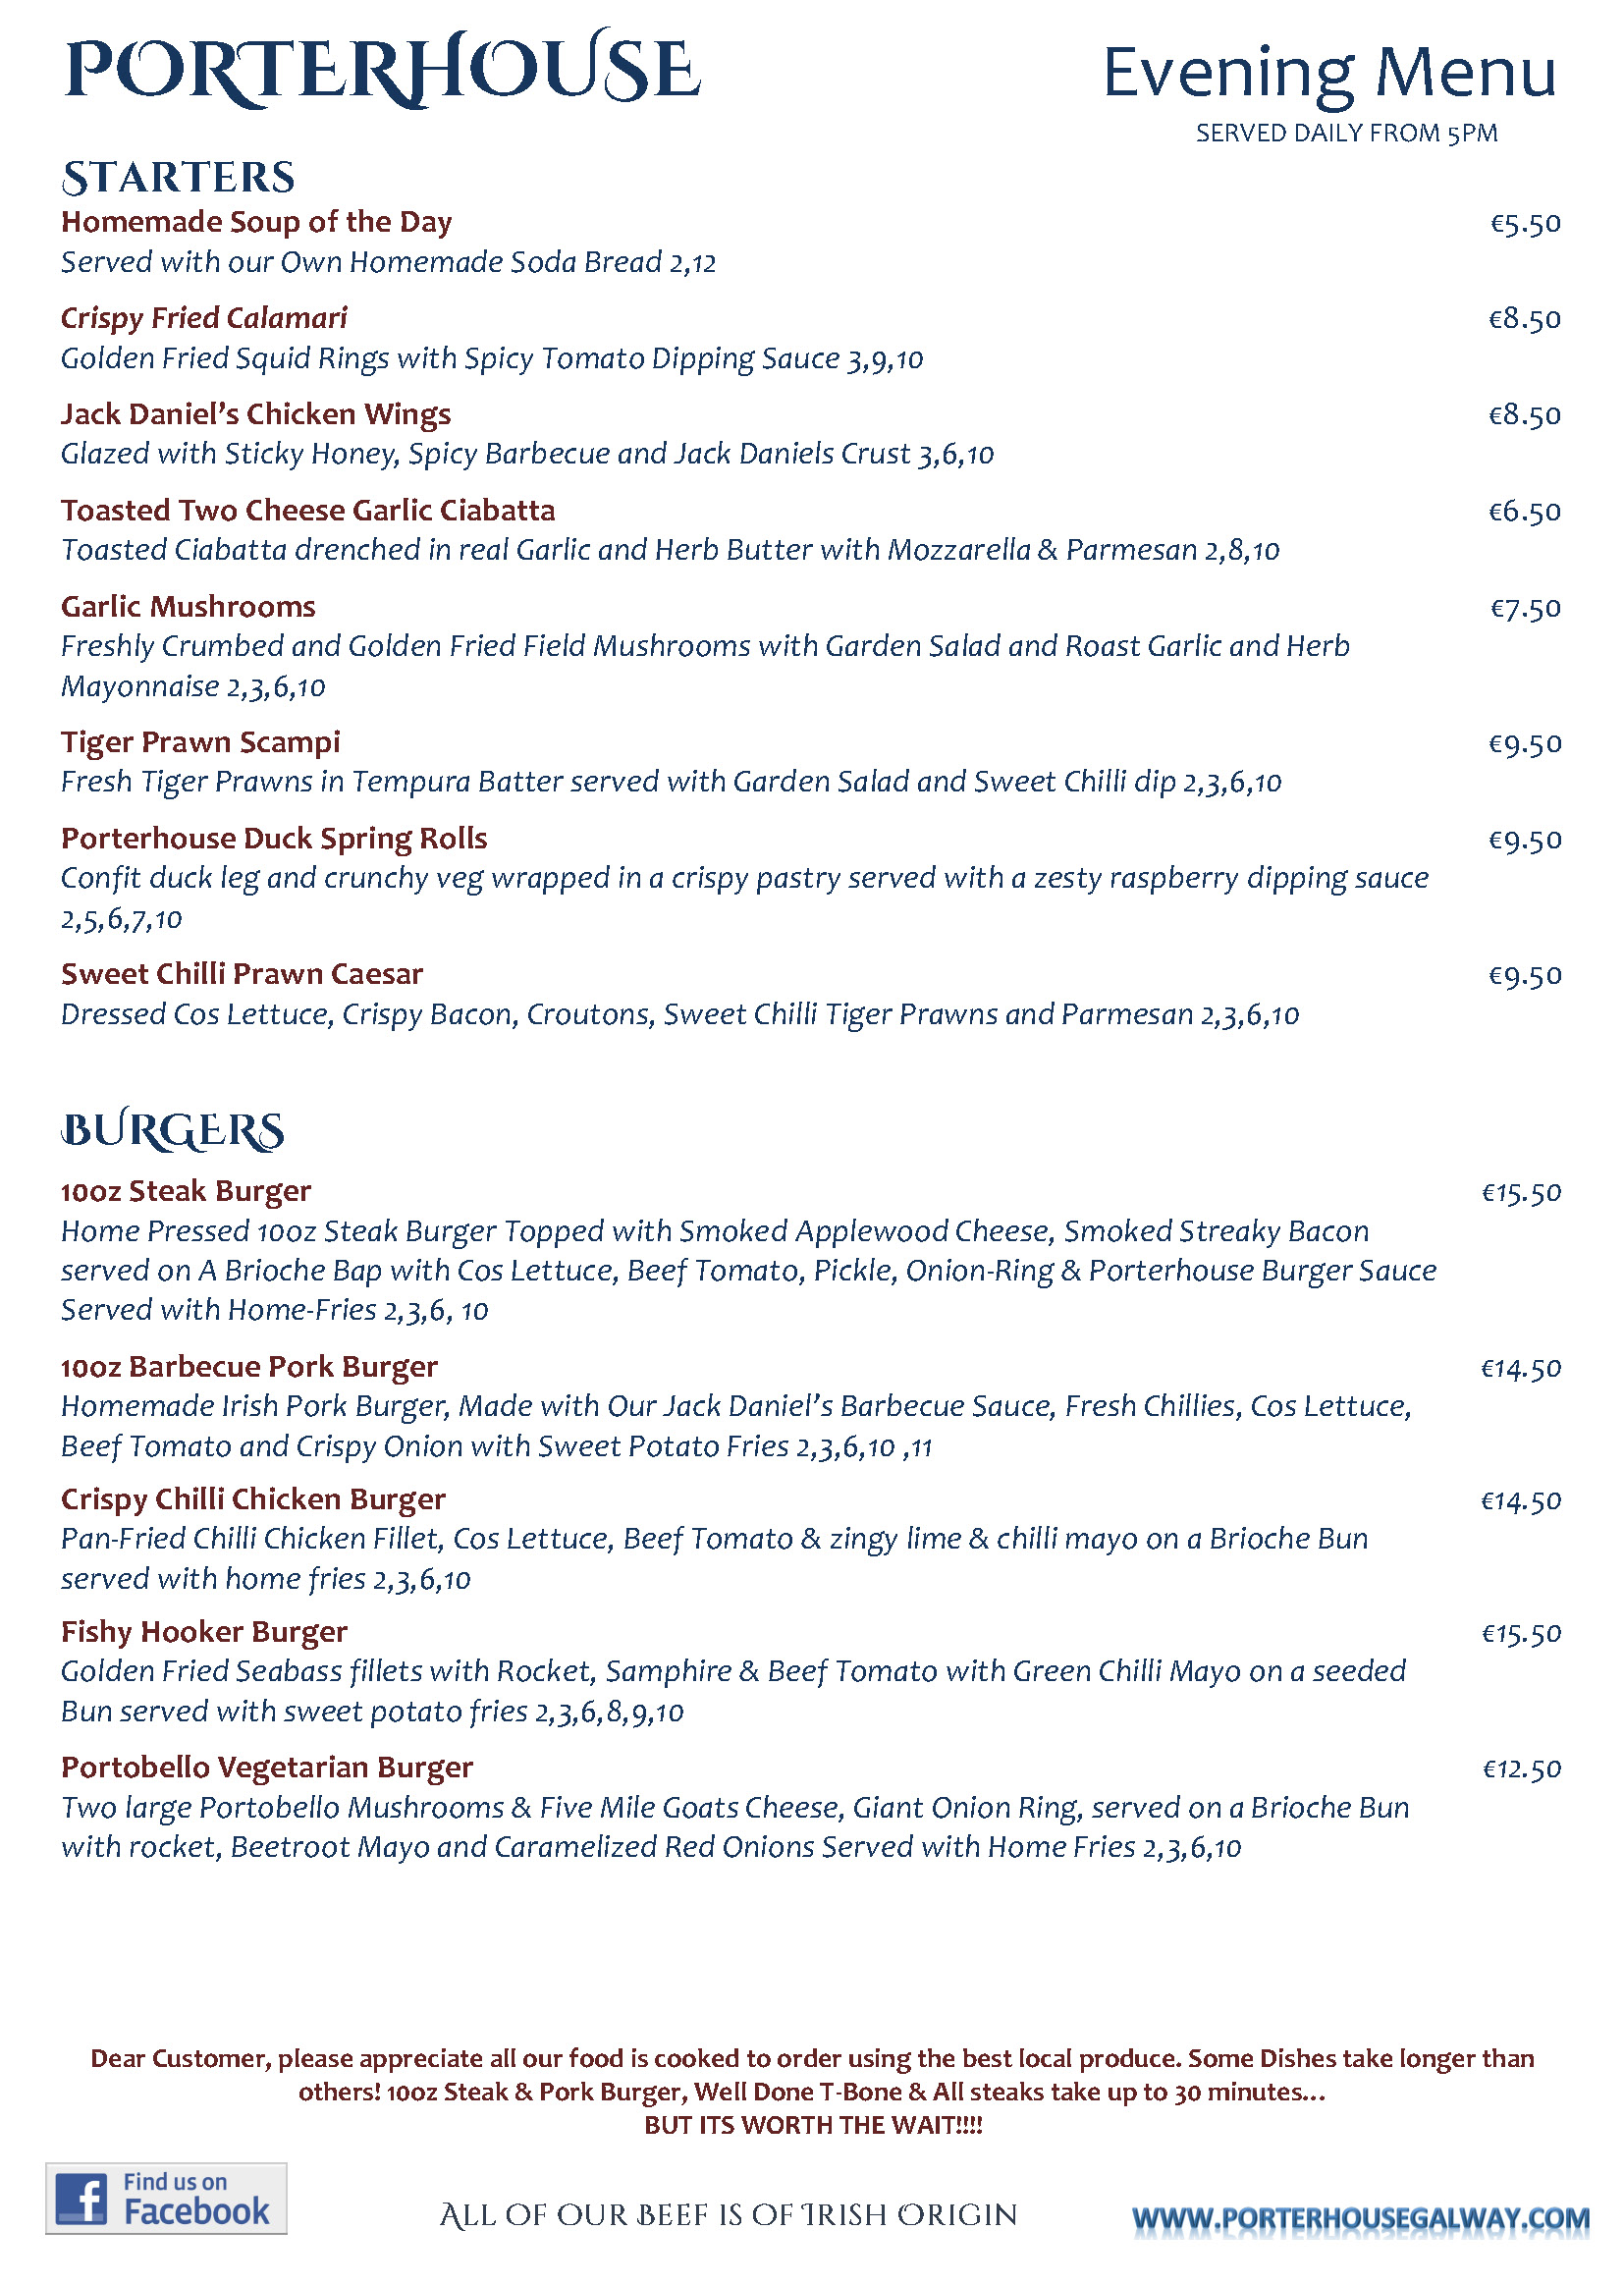 Porterhouse Galway - Evening Menu - Final 19.07.2018_Page_2.jpg